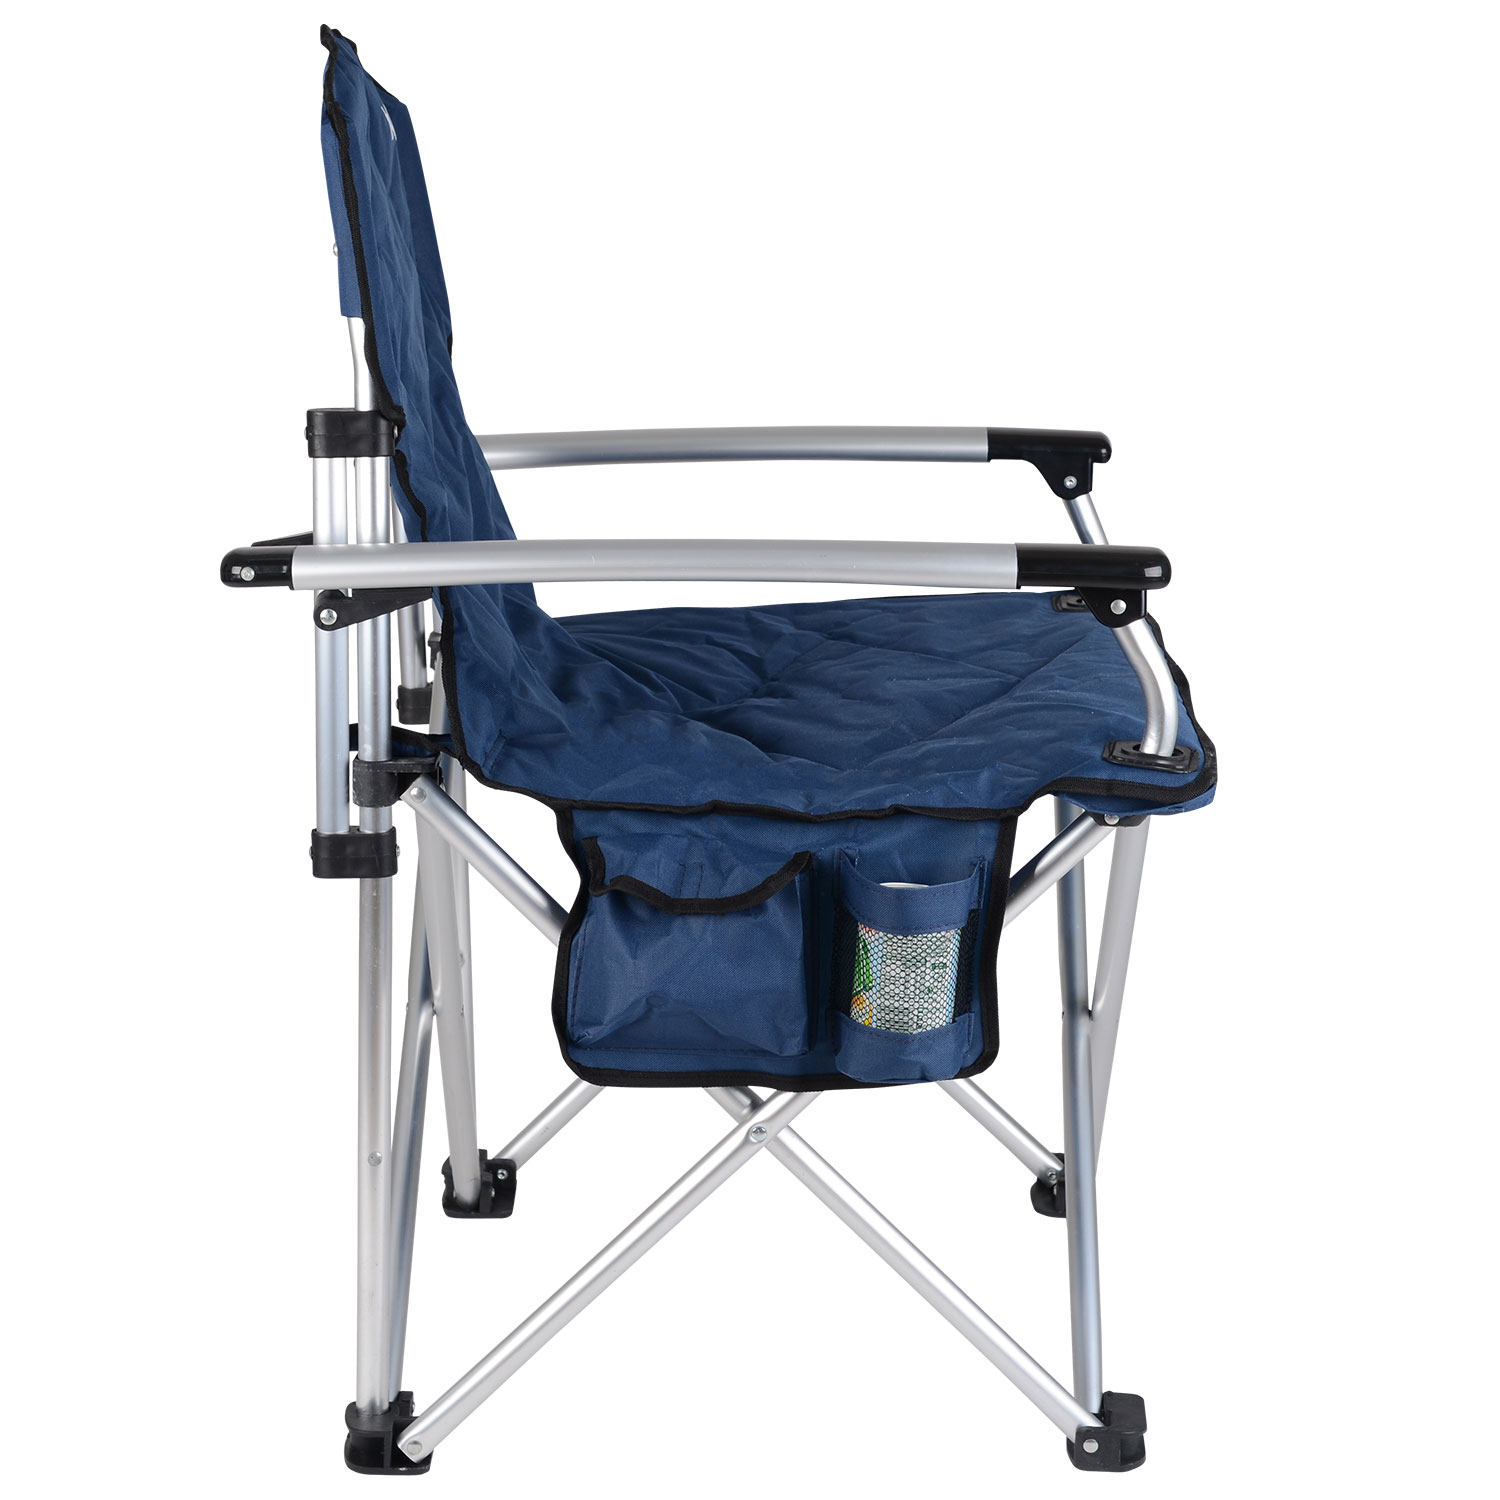 Folding Camping Chair Padded Outdoor Festival Armchair With Drink Holder And